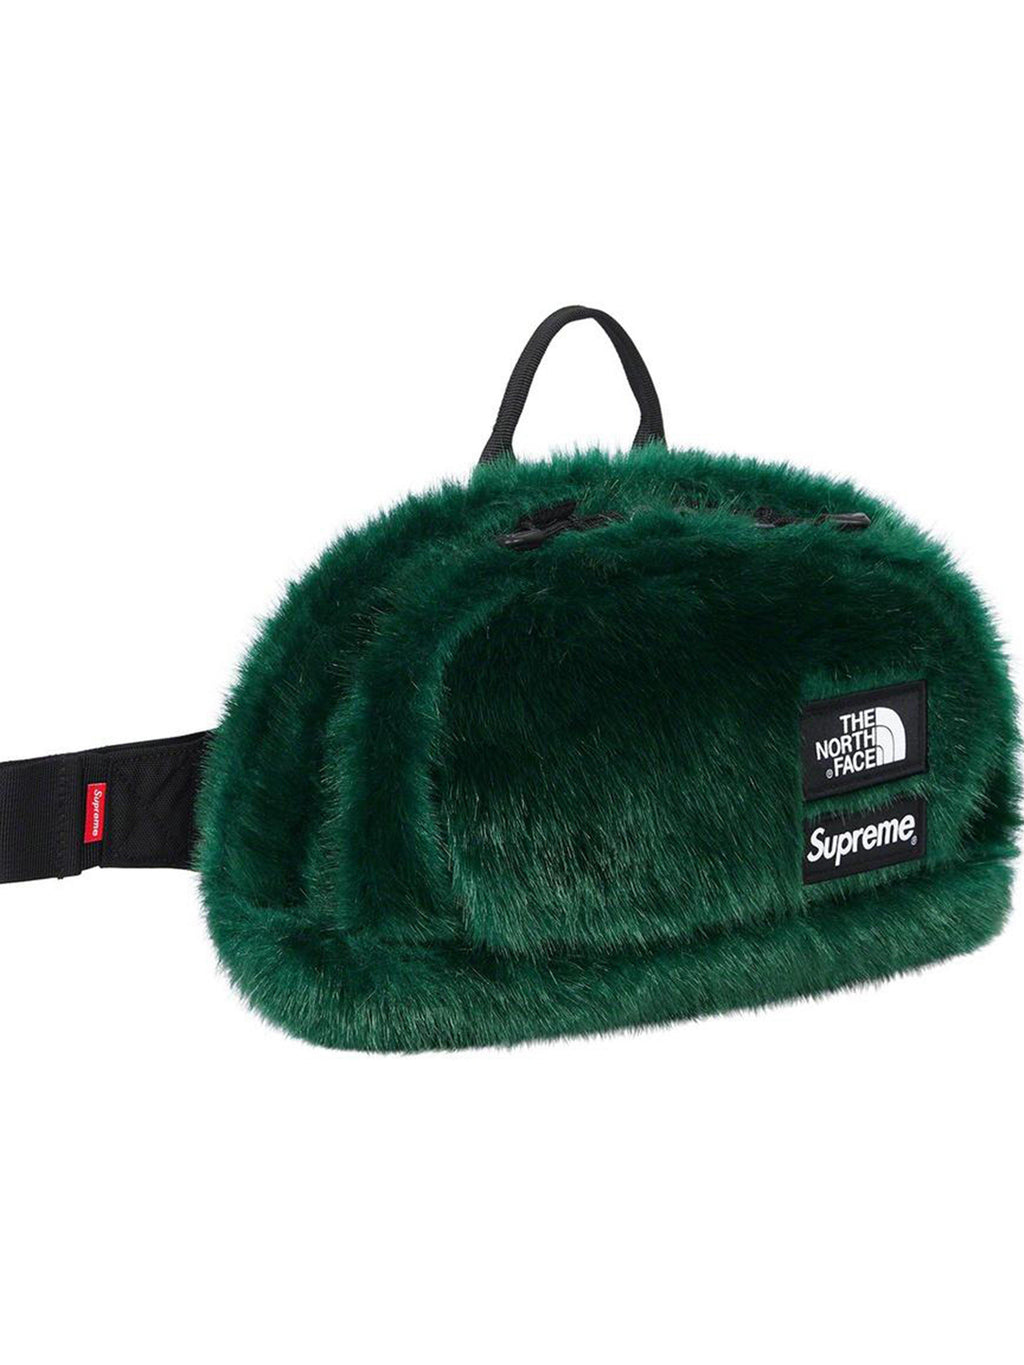 Supreme X The North Face Faux Fur Waist Bag Green - Prior